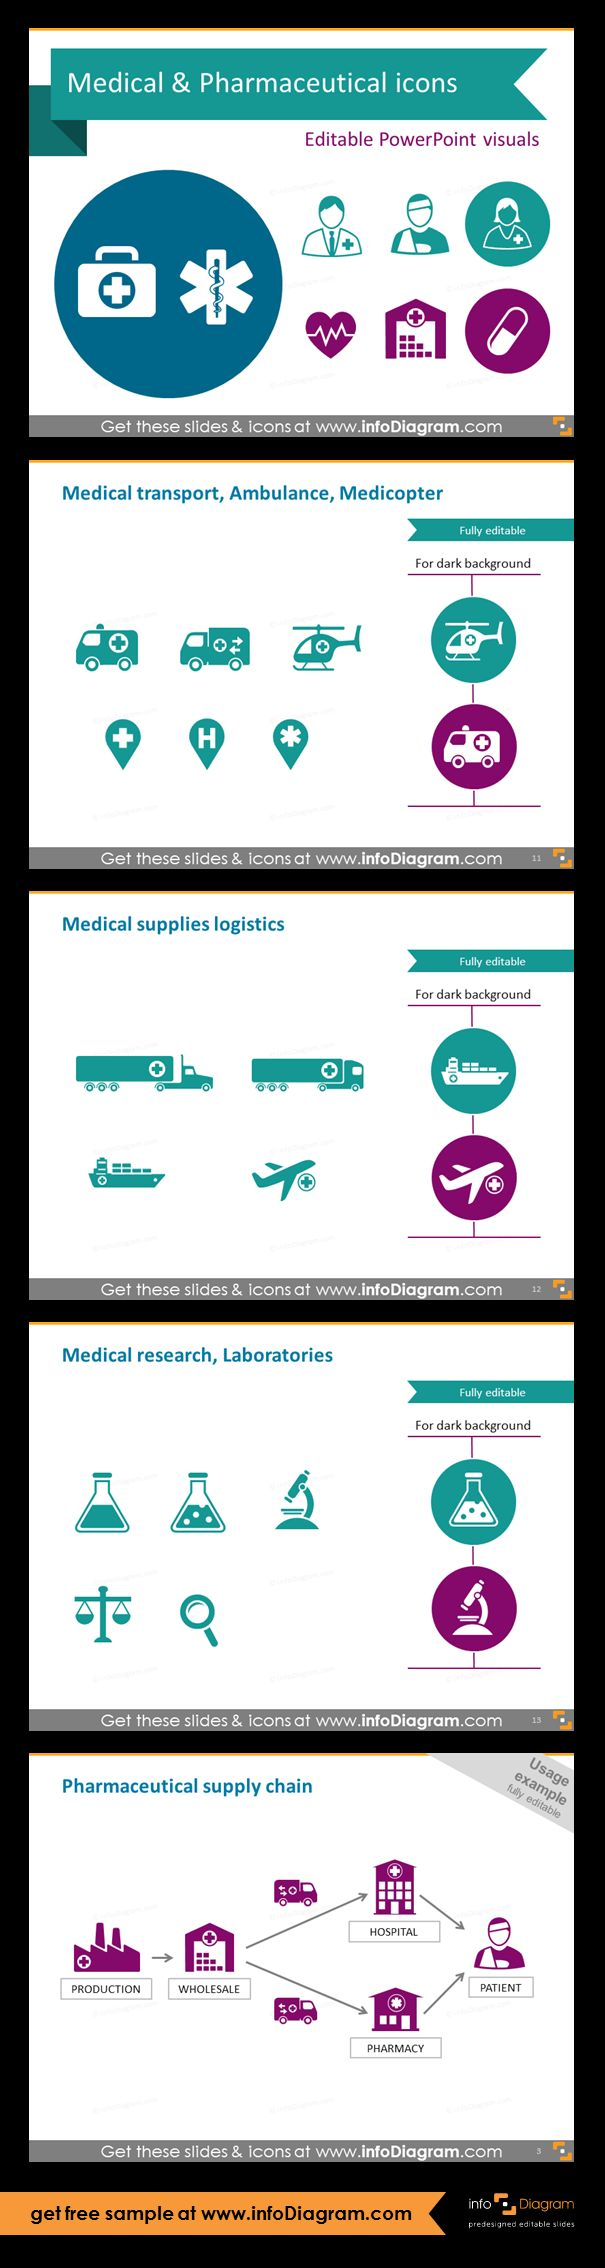 Medical and Pharmaceutical pictograms: medical transport, medical supplies logistics, research and labs. Do-it-yourself pharmaceutical infographics: supply chain from production till patient.